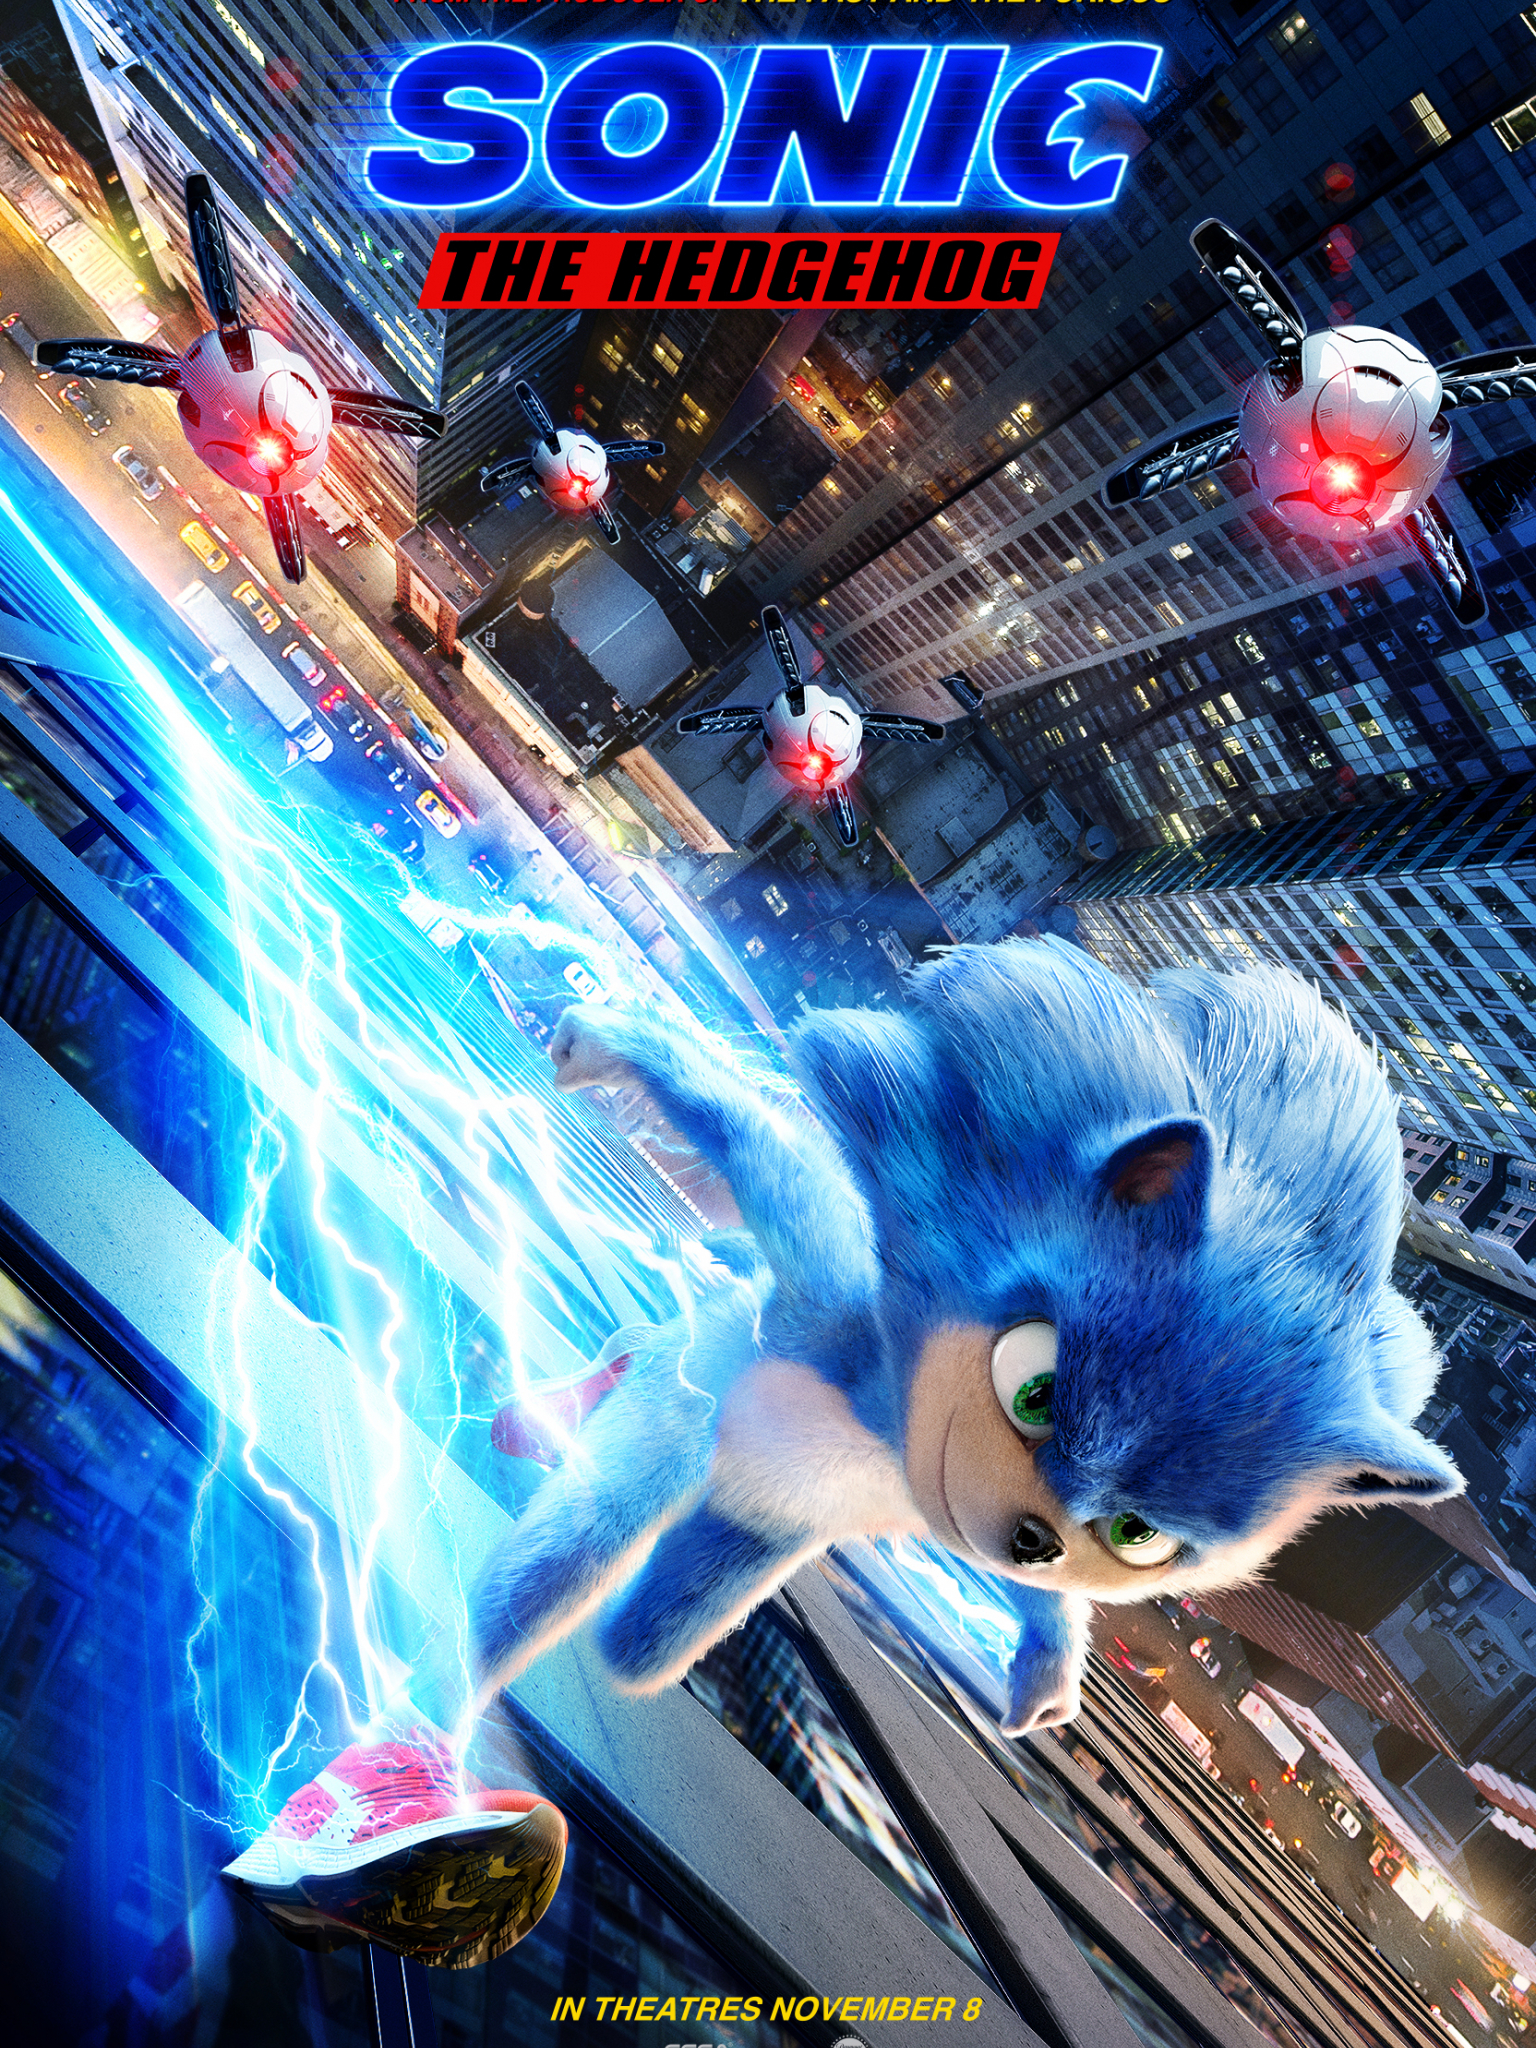 Free Download Sonic The Hedgehog 2020 Photo Gallery Imdb 1664x2466 For Your Desktop Mobile Tablet Explore 28 Sonic The Hedgehog Movie 2020 Wallpapers Sonic The Hedgehog Movie 2020 Wallpapers